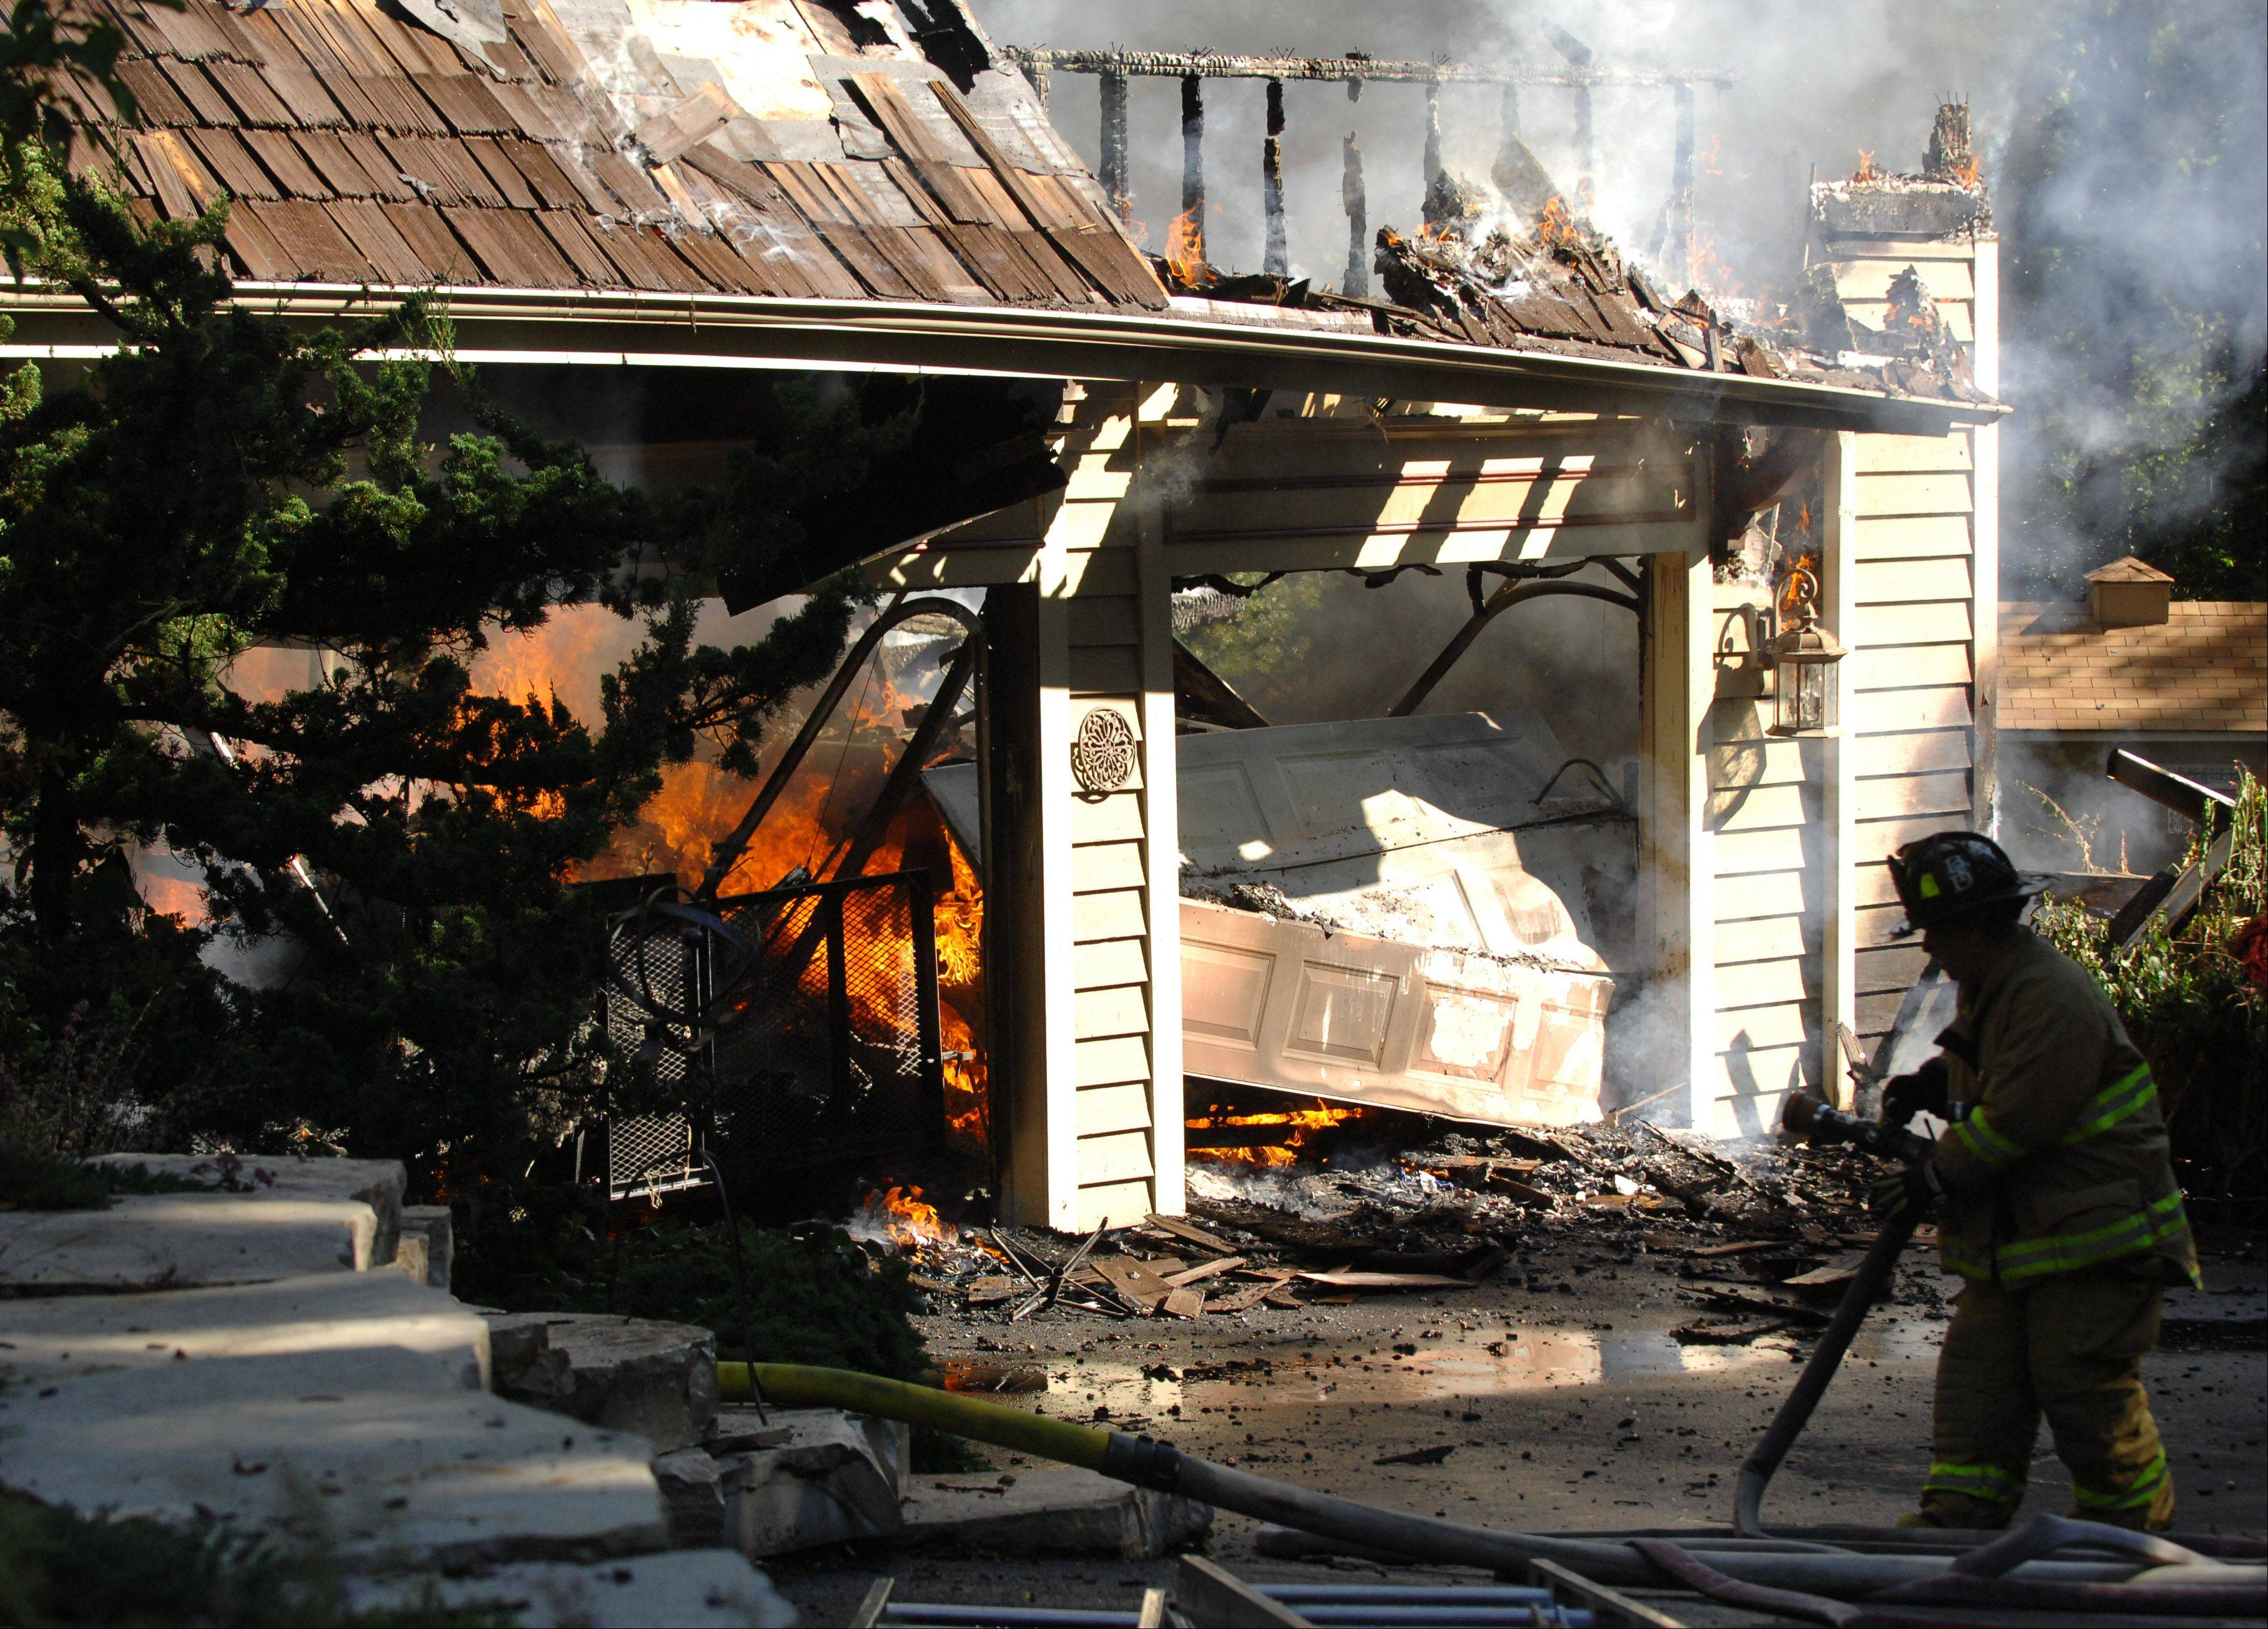 A house fire on Spring Wood Lane destroyed the two-story home Monday morning.